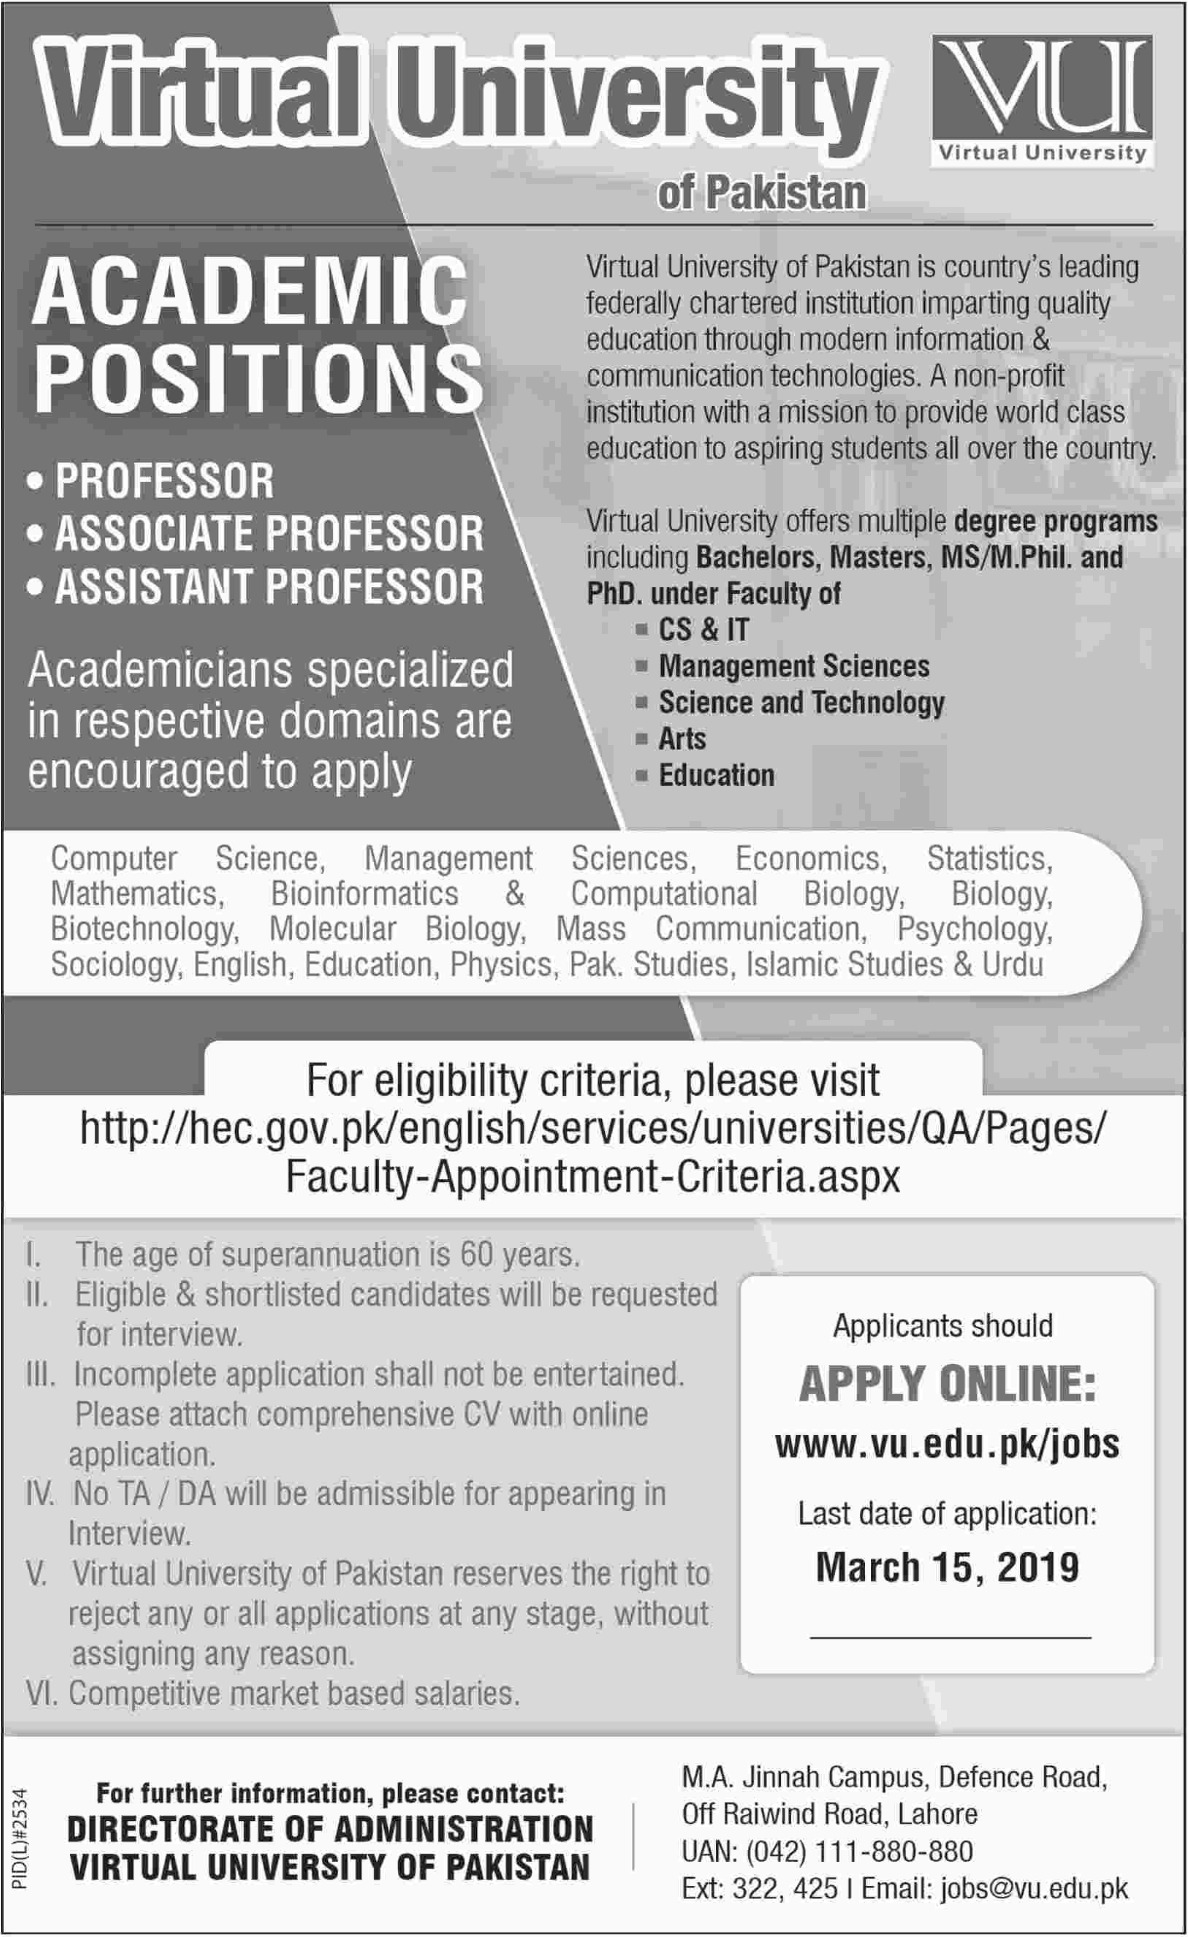 VU Jobs 2019 Virtual University of Pakistan Latest